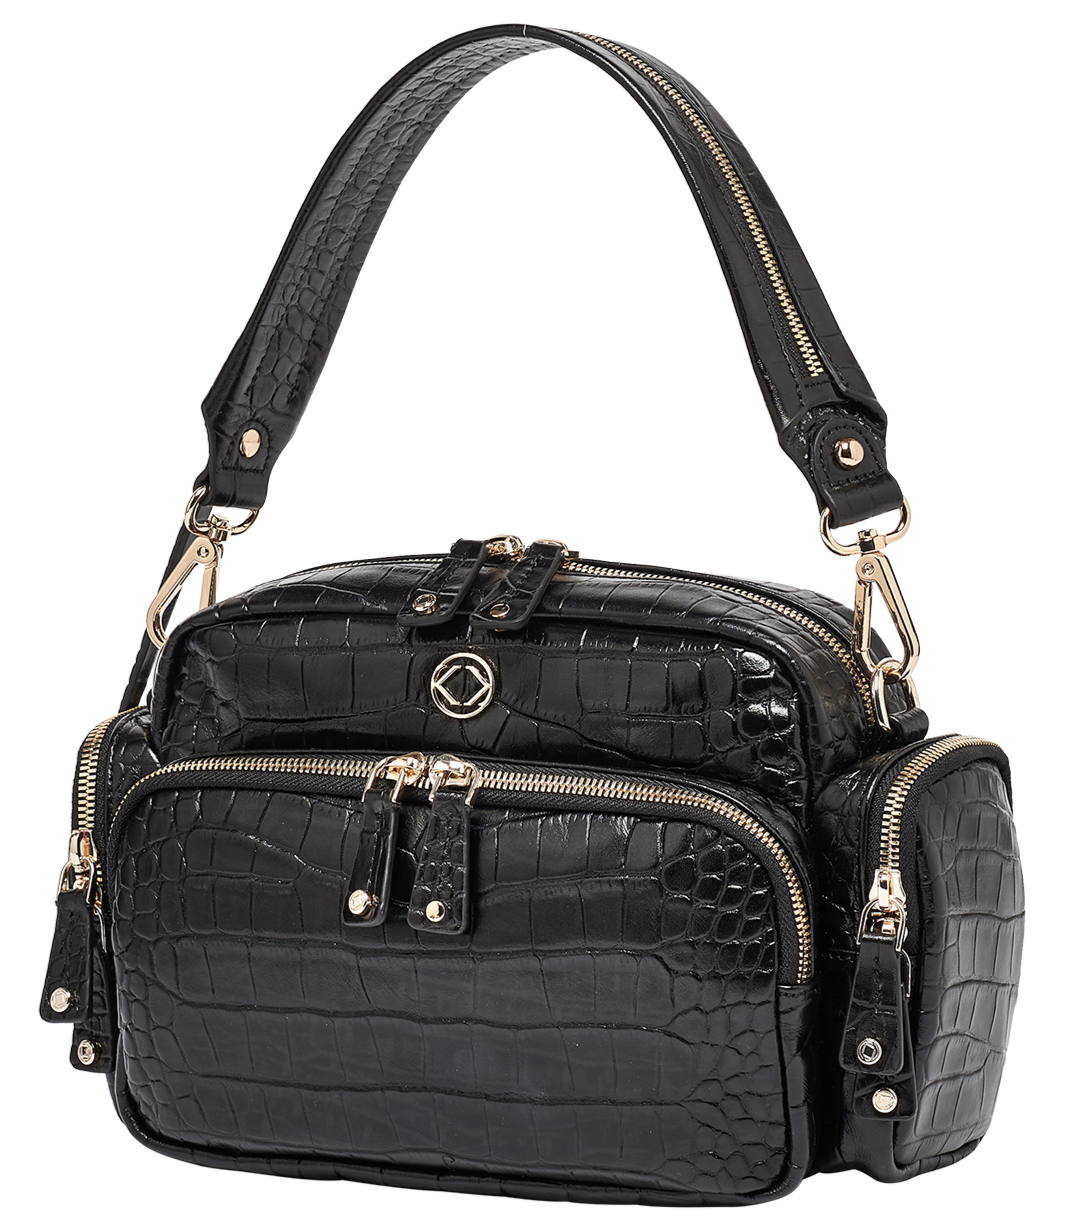 Greta Limited Edition Black Croc Leather Cross Body Bag - Pre-orders Open Soon